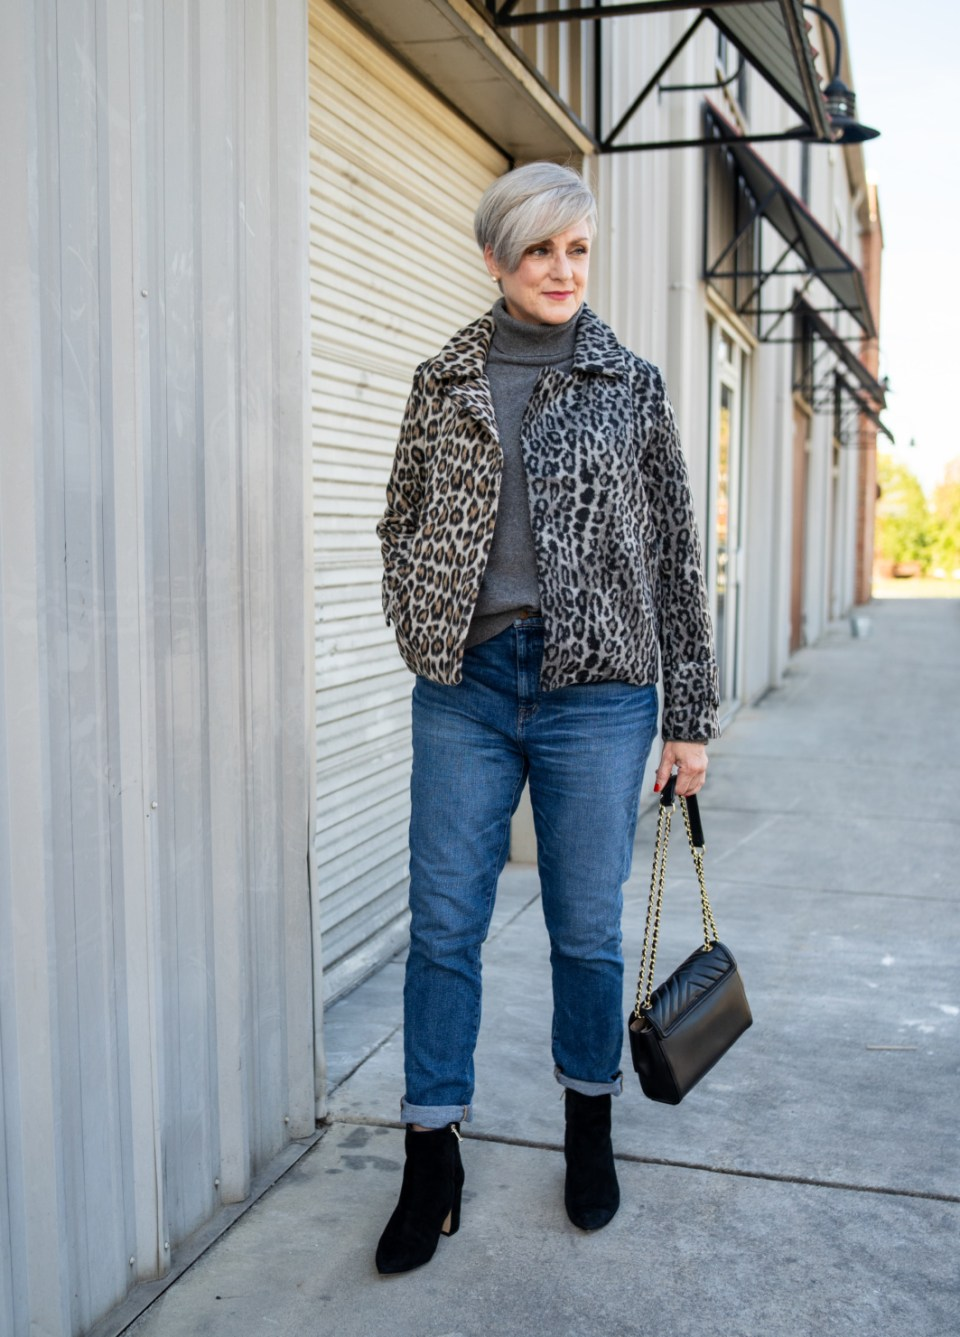 leopard jackets and suede booties